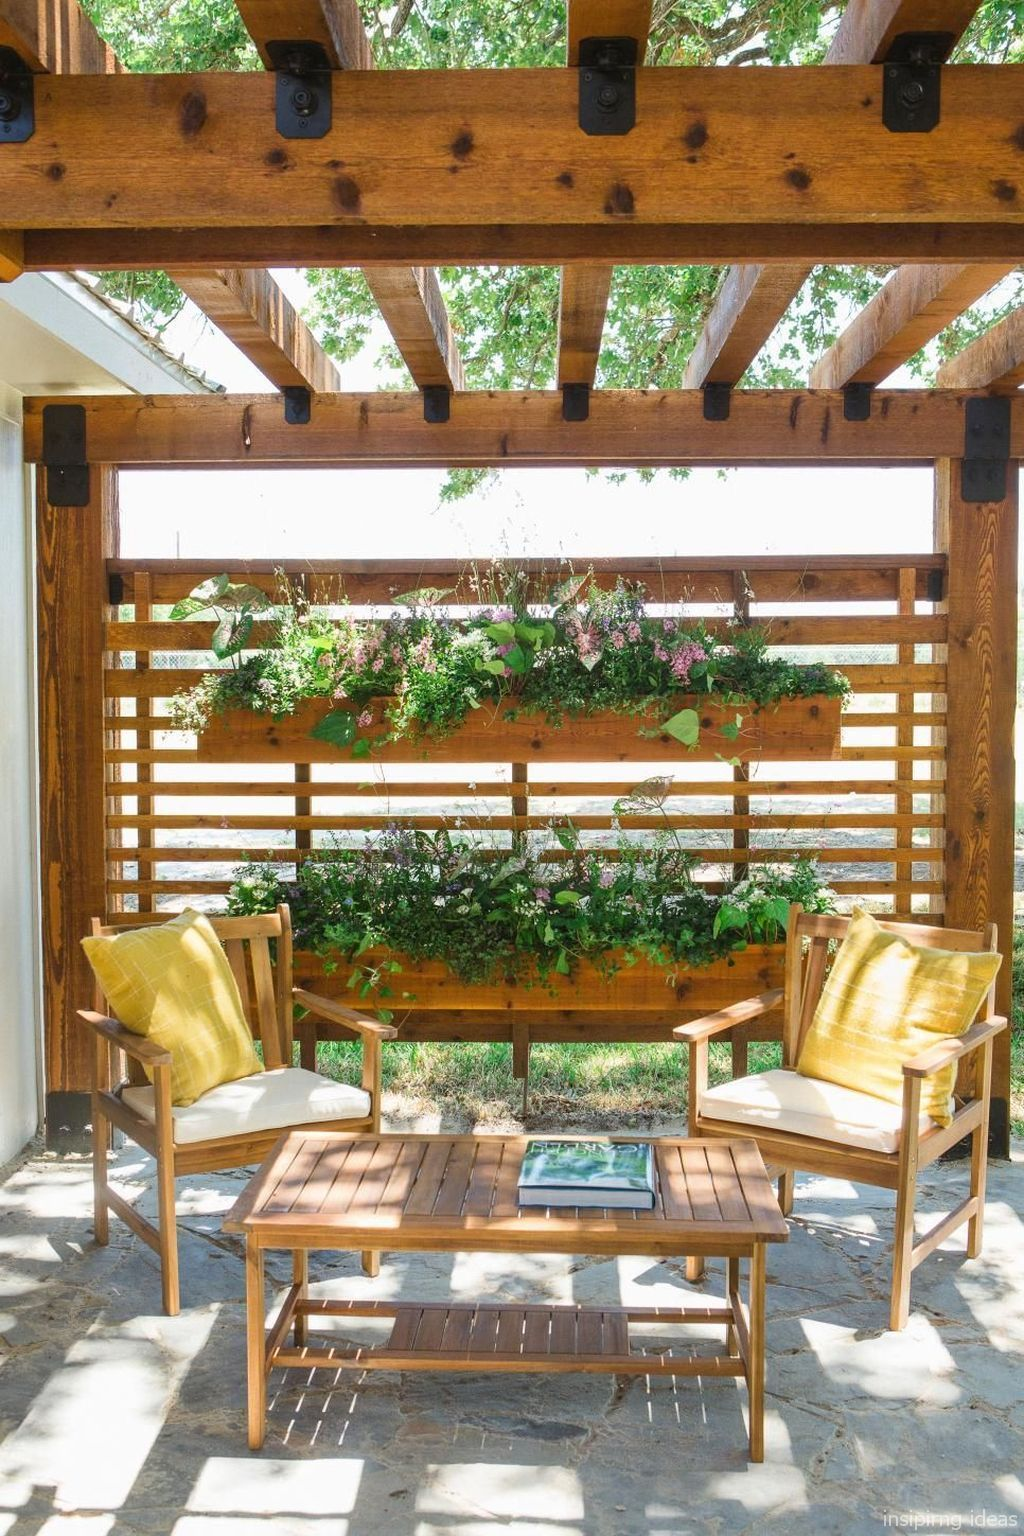 86 beautiful diy pergola design ideas | Salle de bains | Pinterest